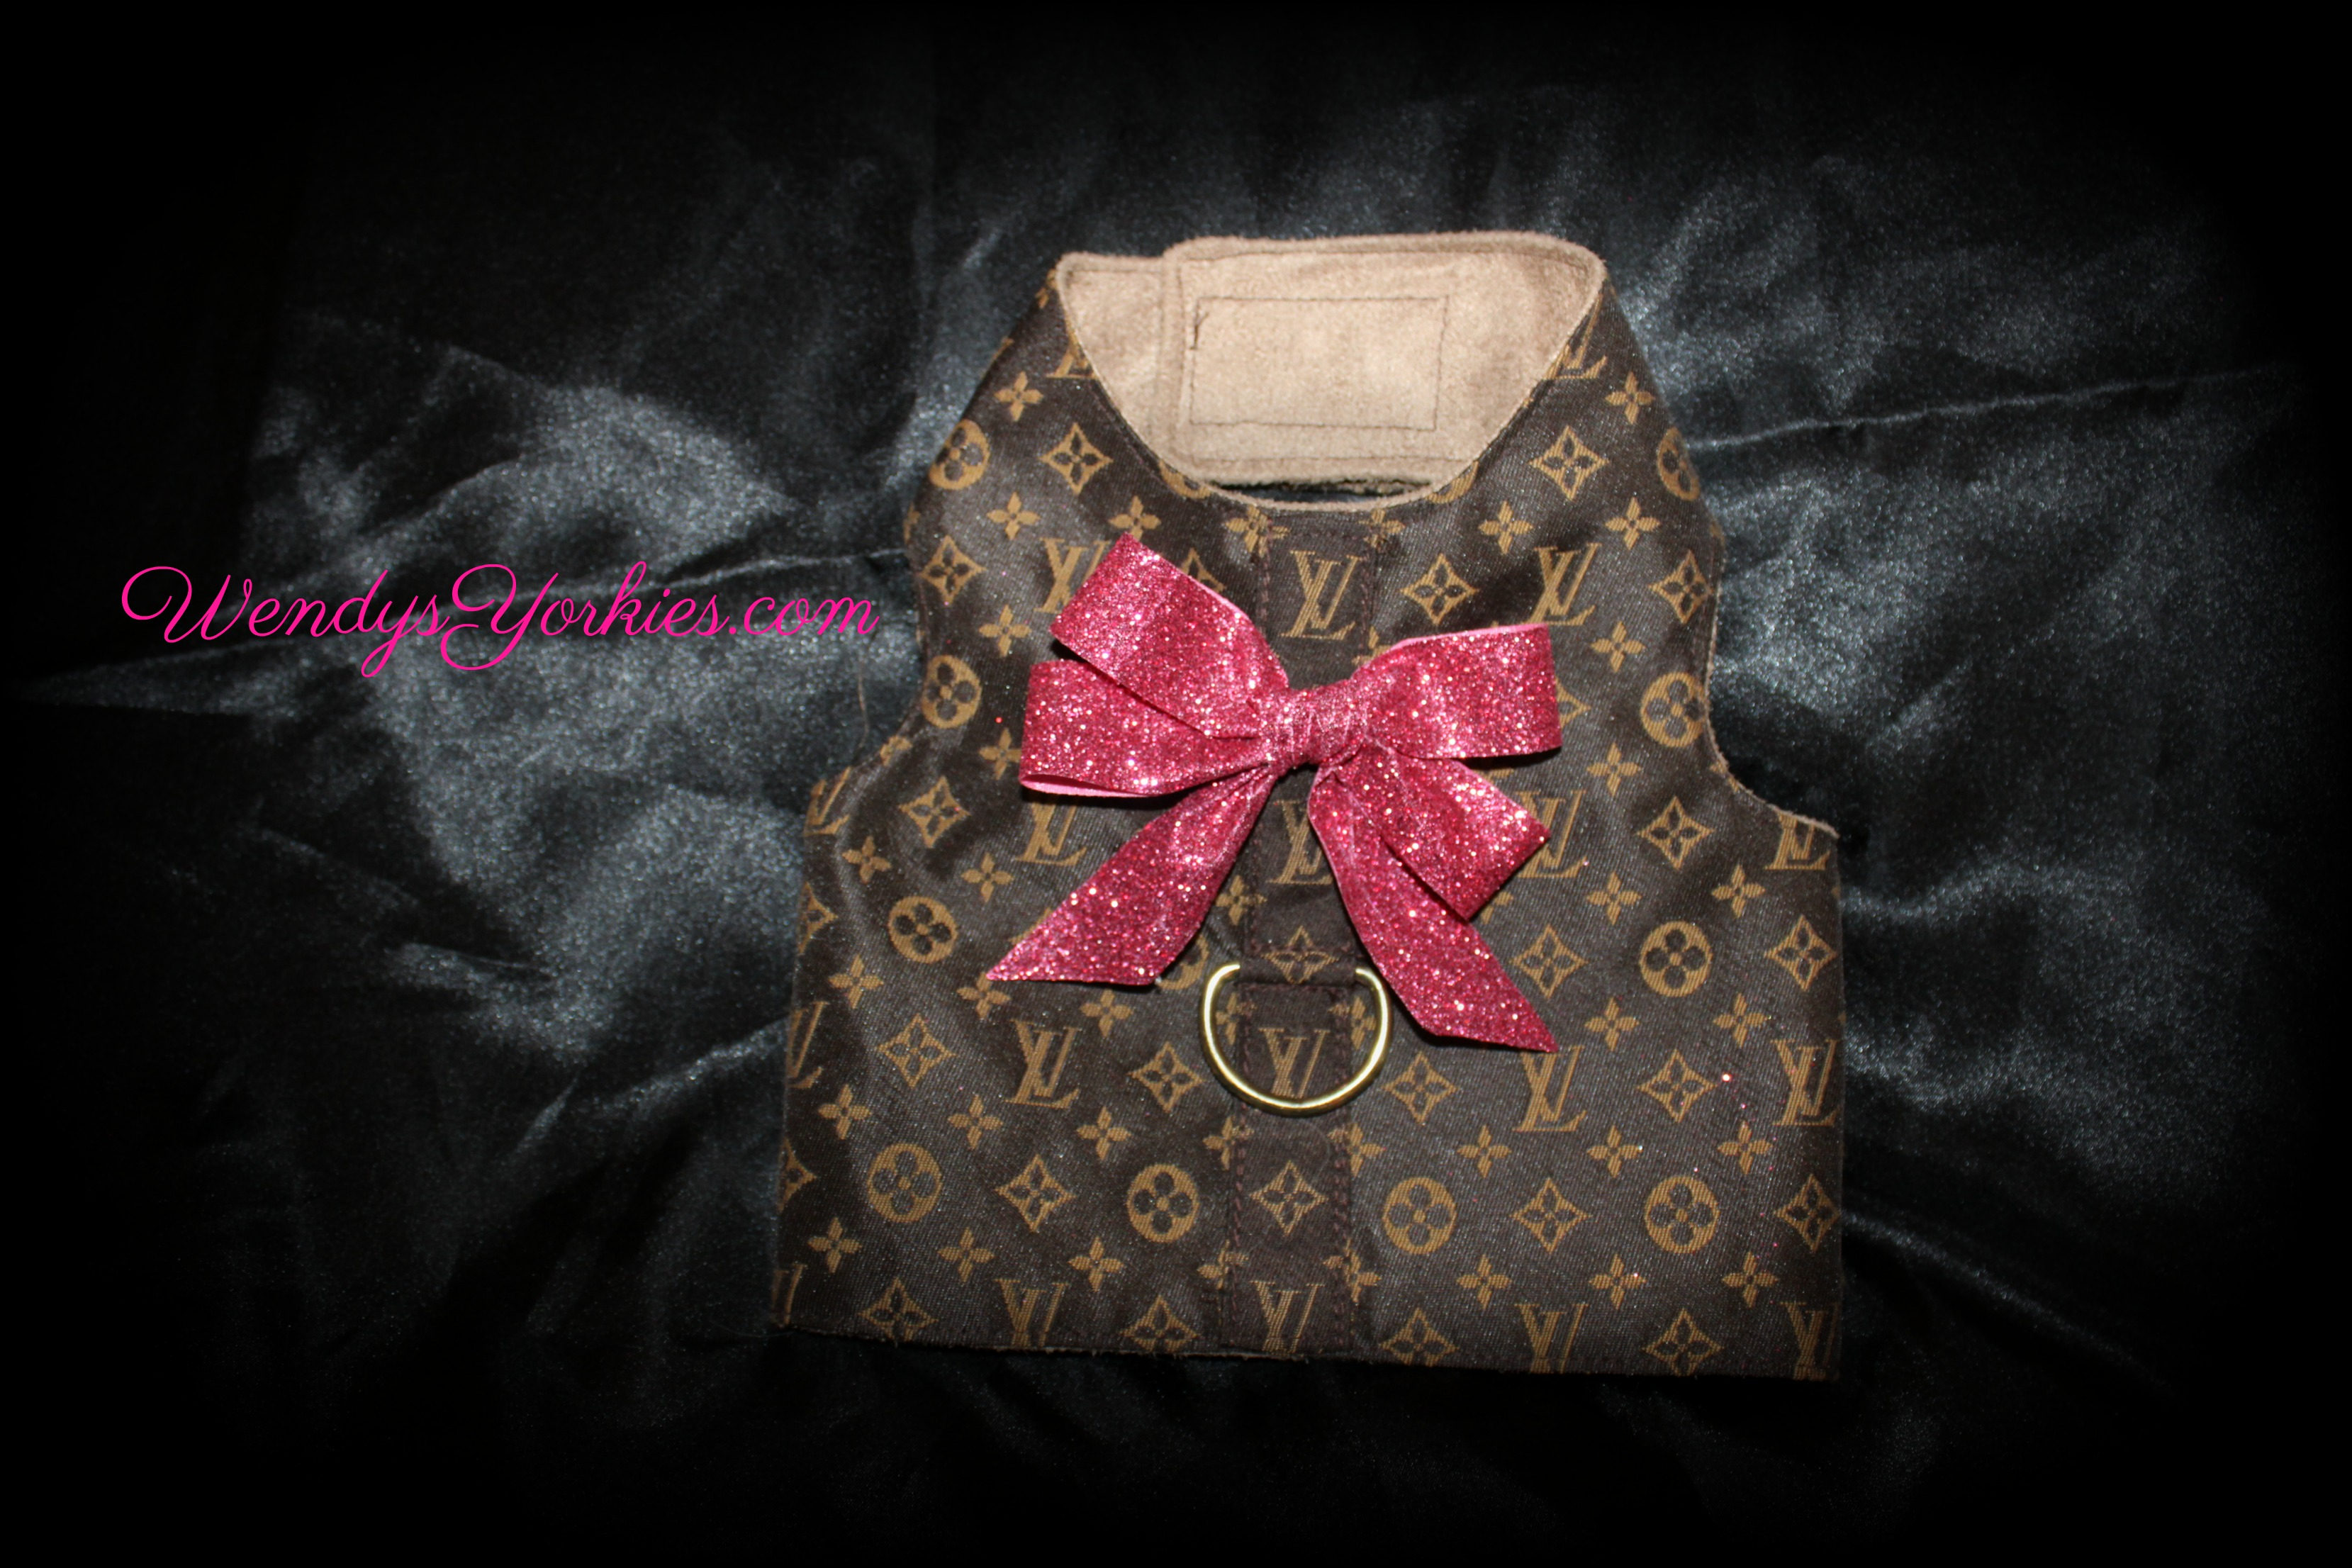 LV Dog harness, Raspberry, WendysYorkies.com